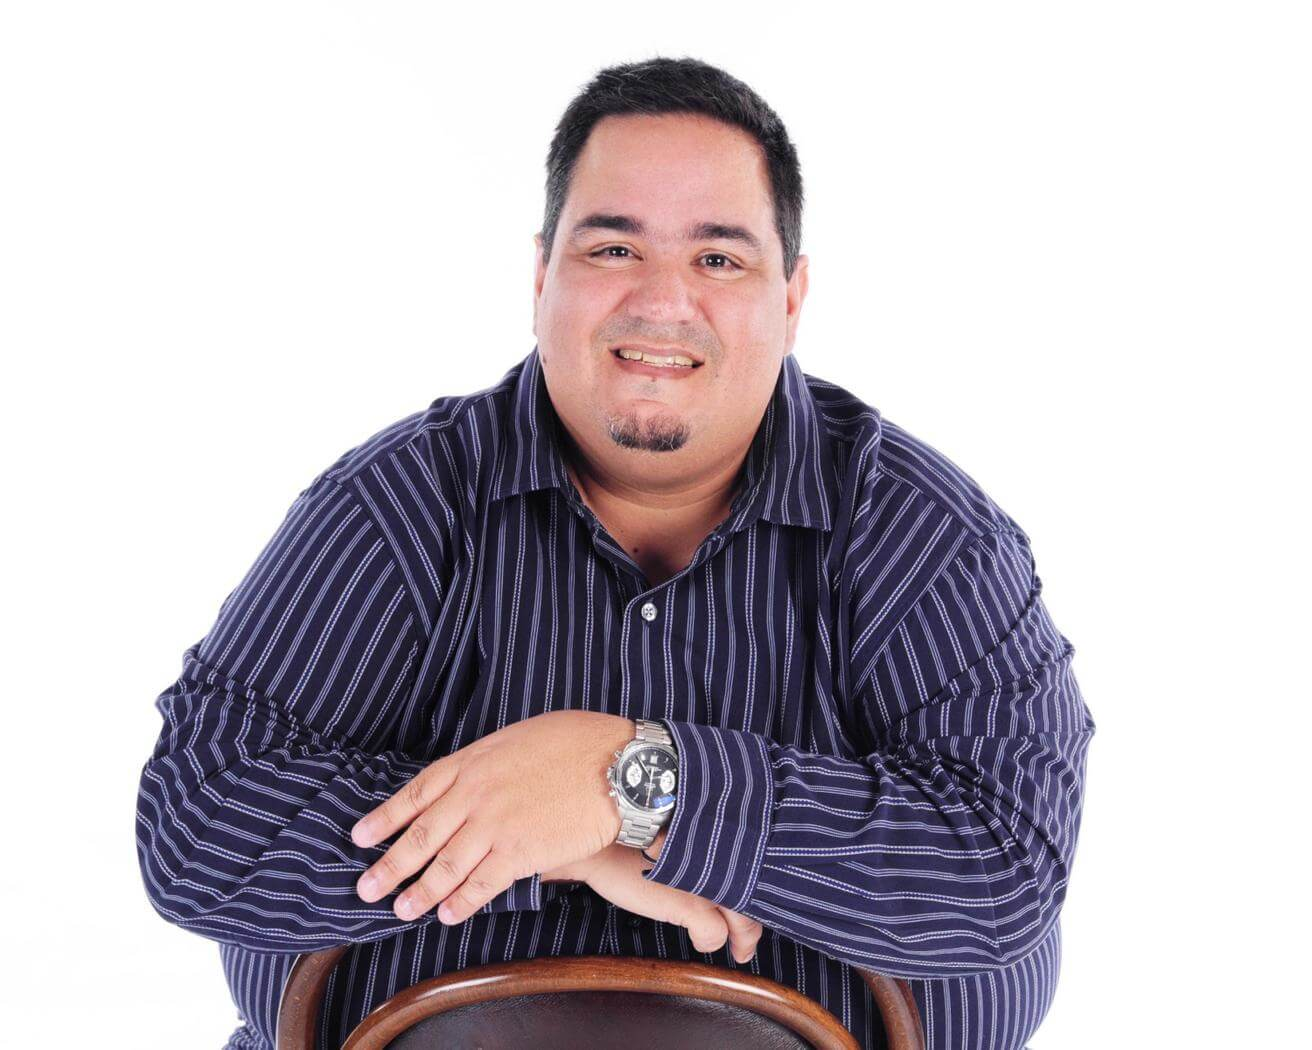 Chris Lema's thoughts on how to become a blogger